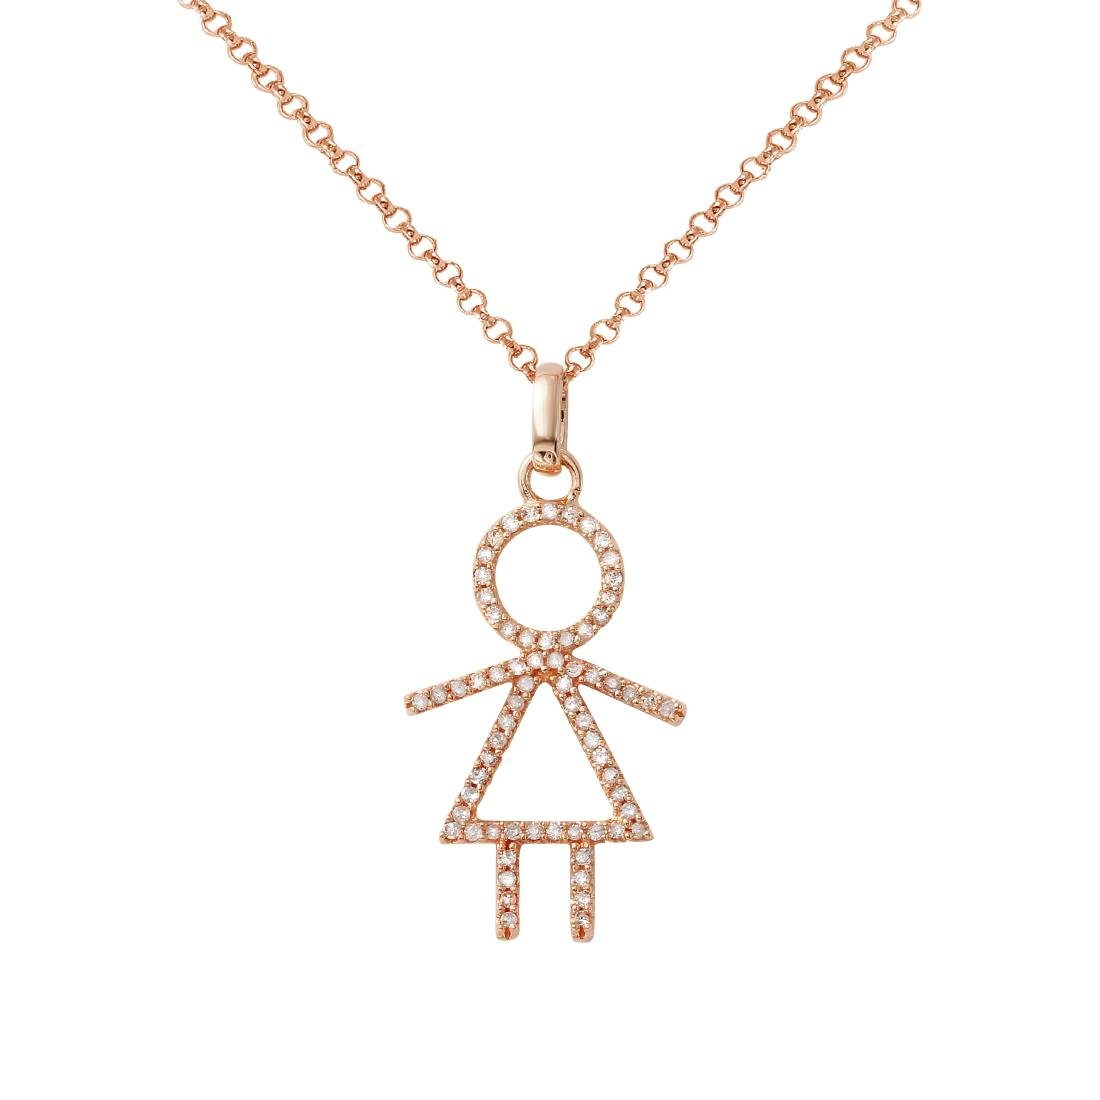 14KT Rose Gold Ladies Slider with Chain - 2